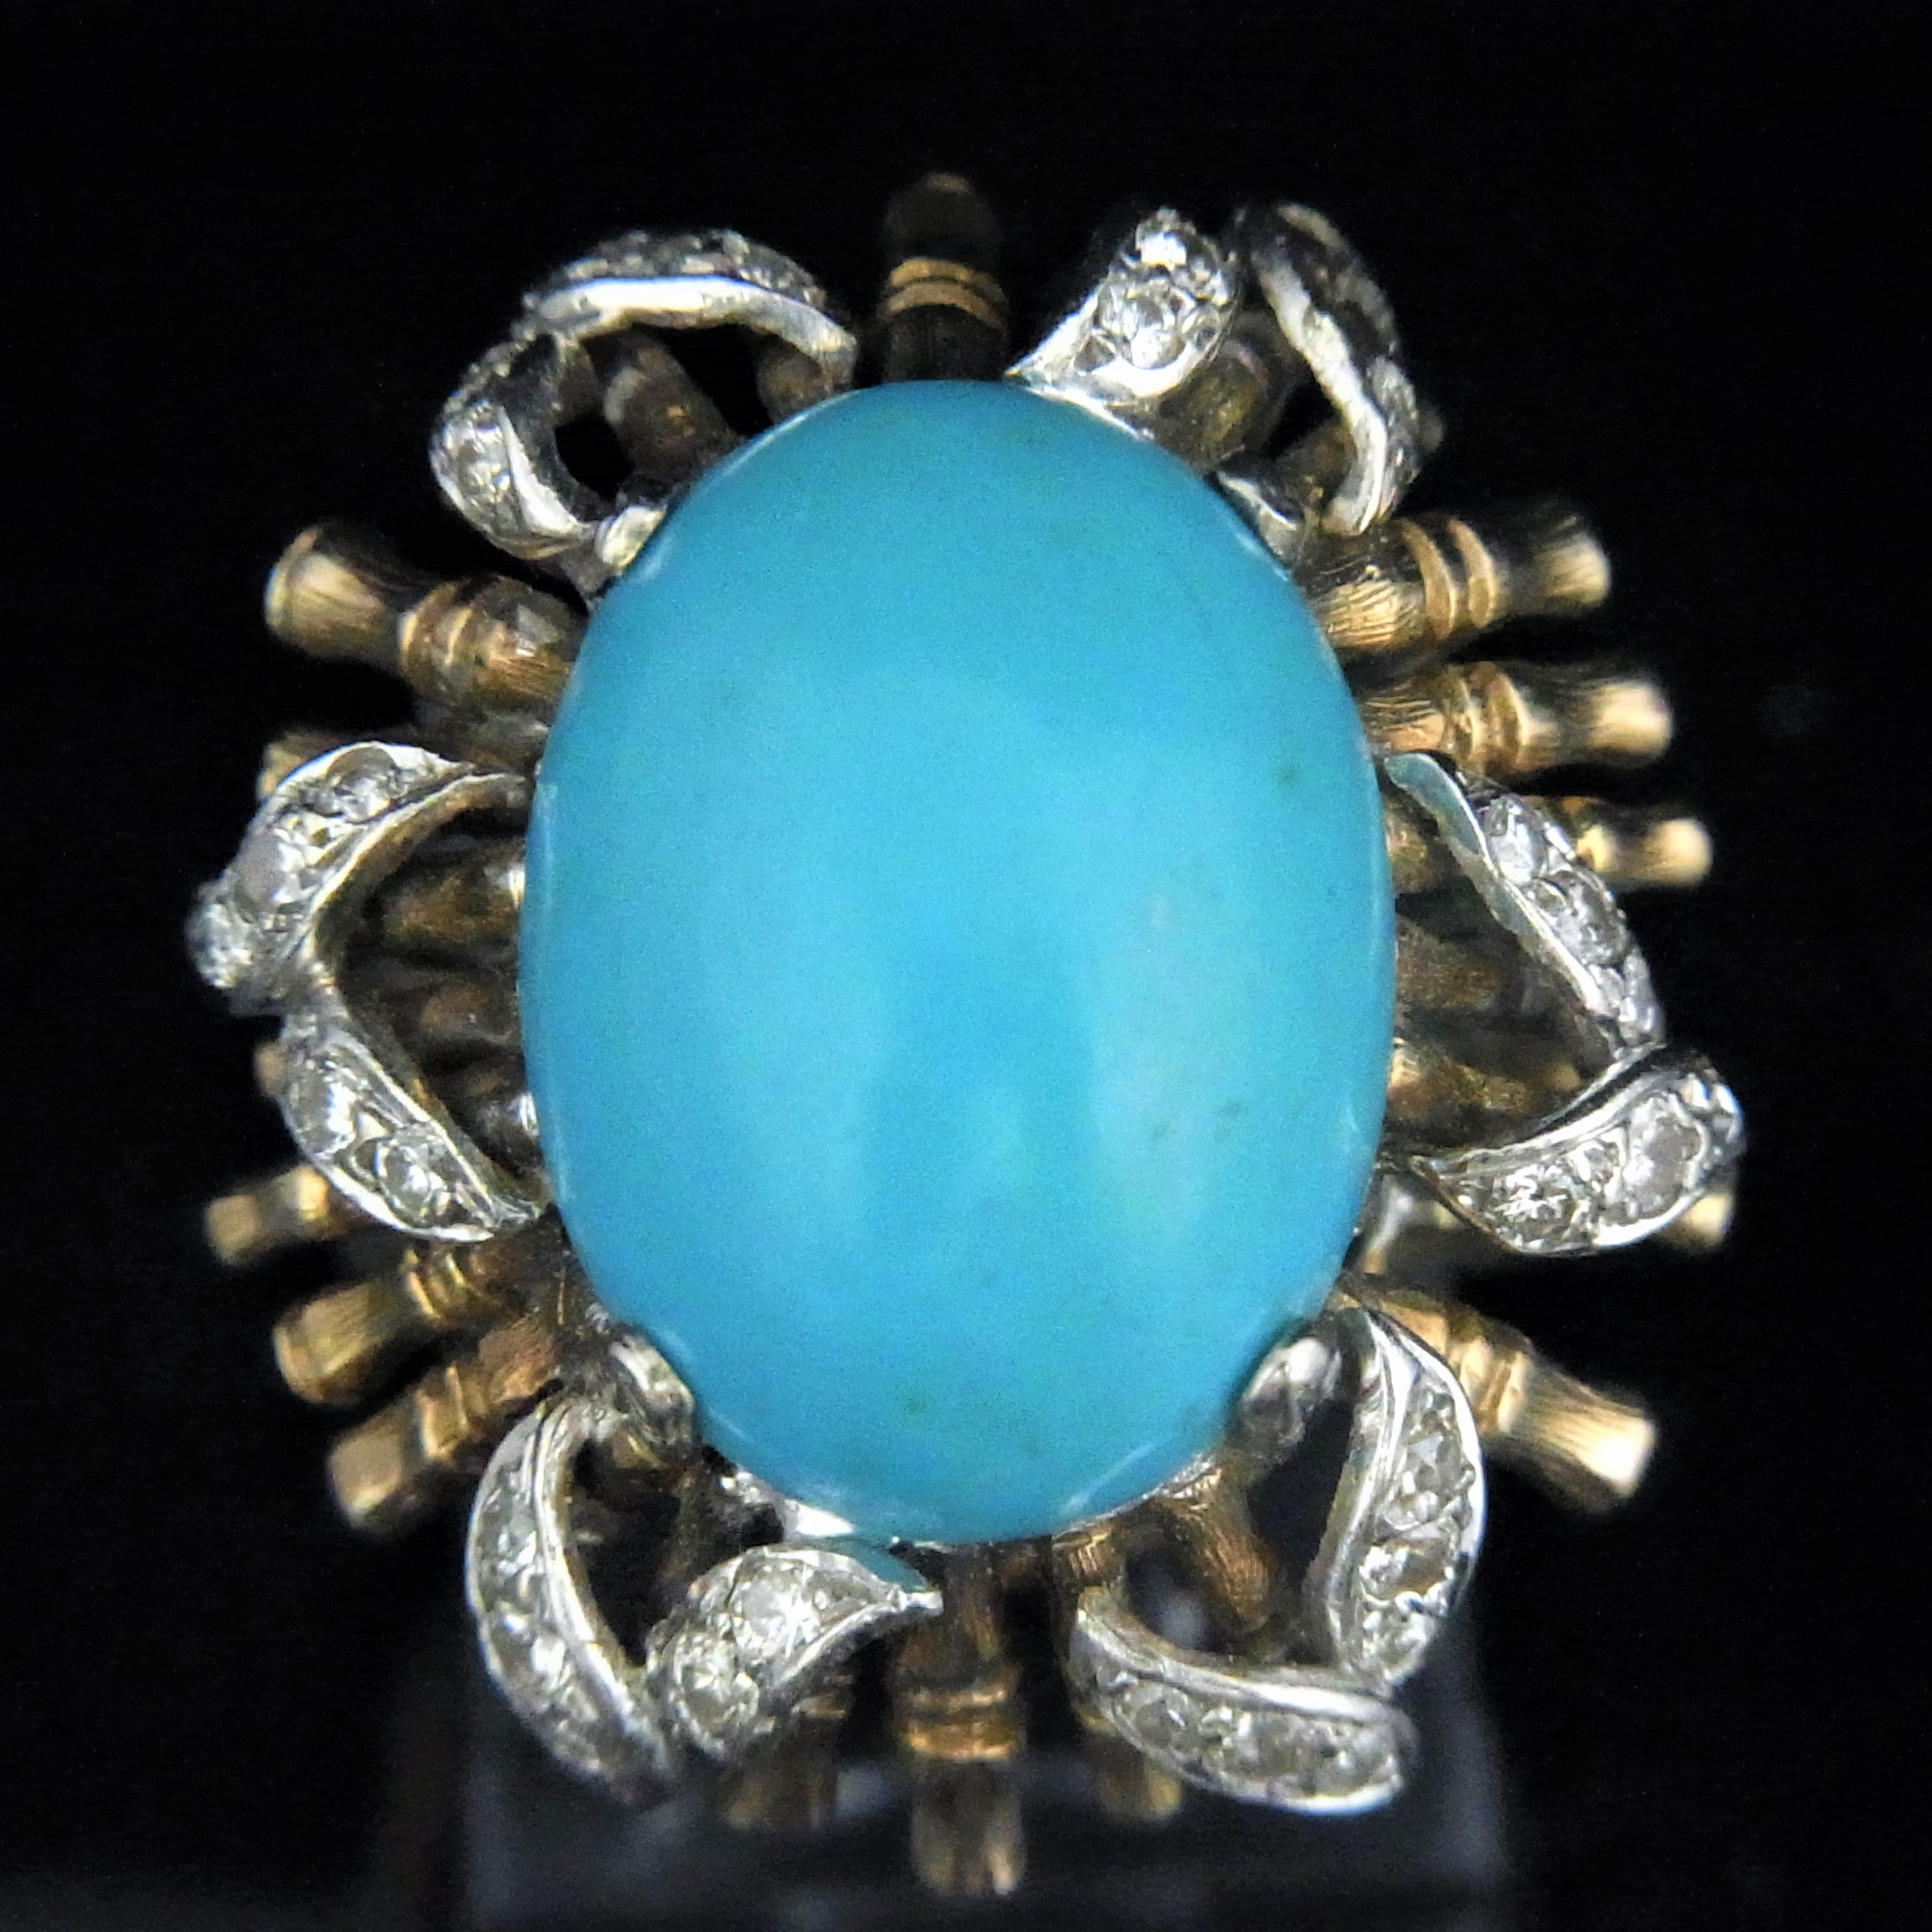 and diamond turquoise today ring free black gold jewelry silver hills product watches shipping overstock